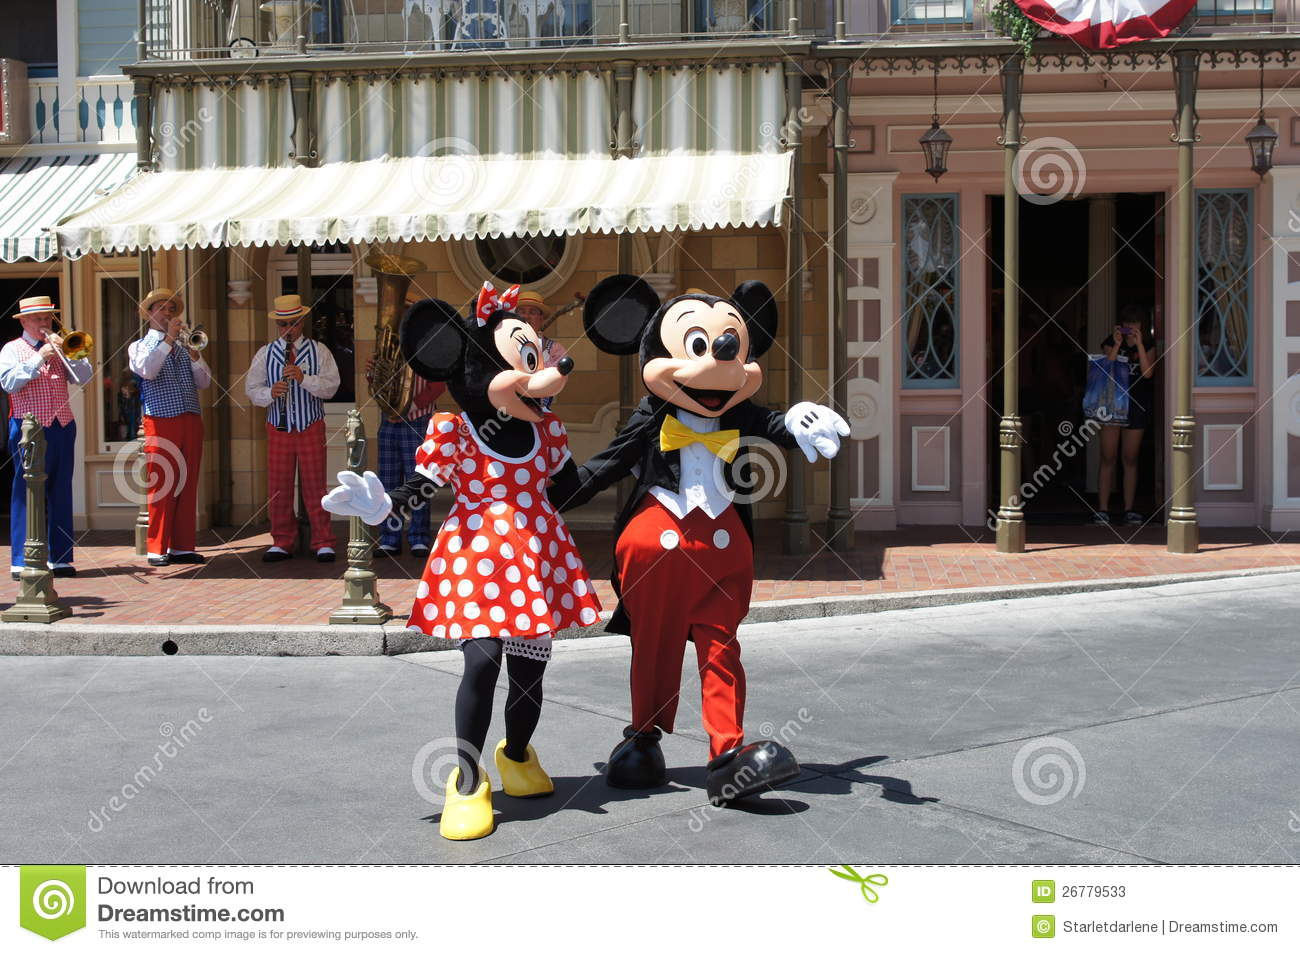 Minnie och Mickey mus på Disneyland